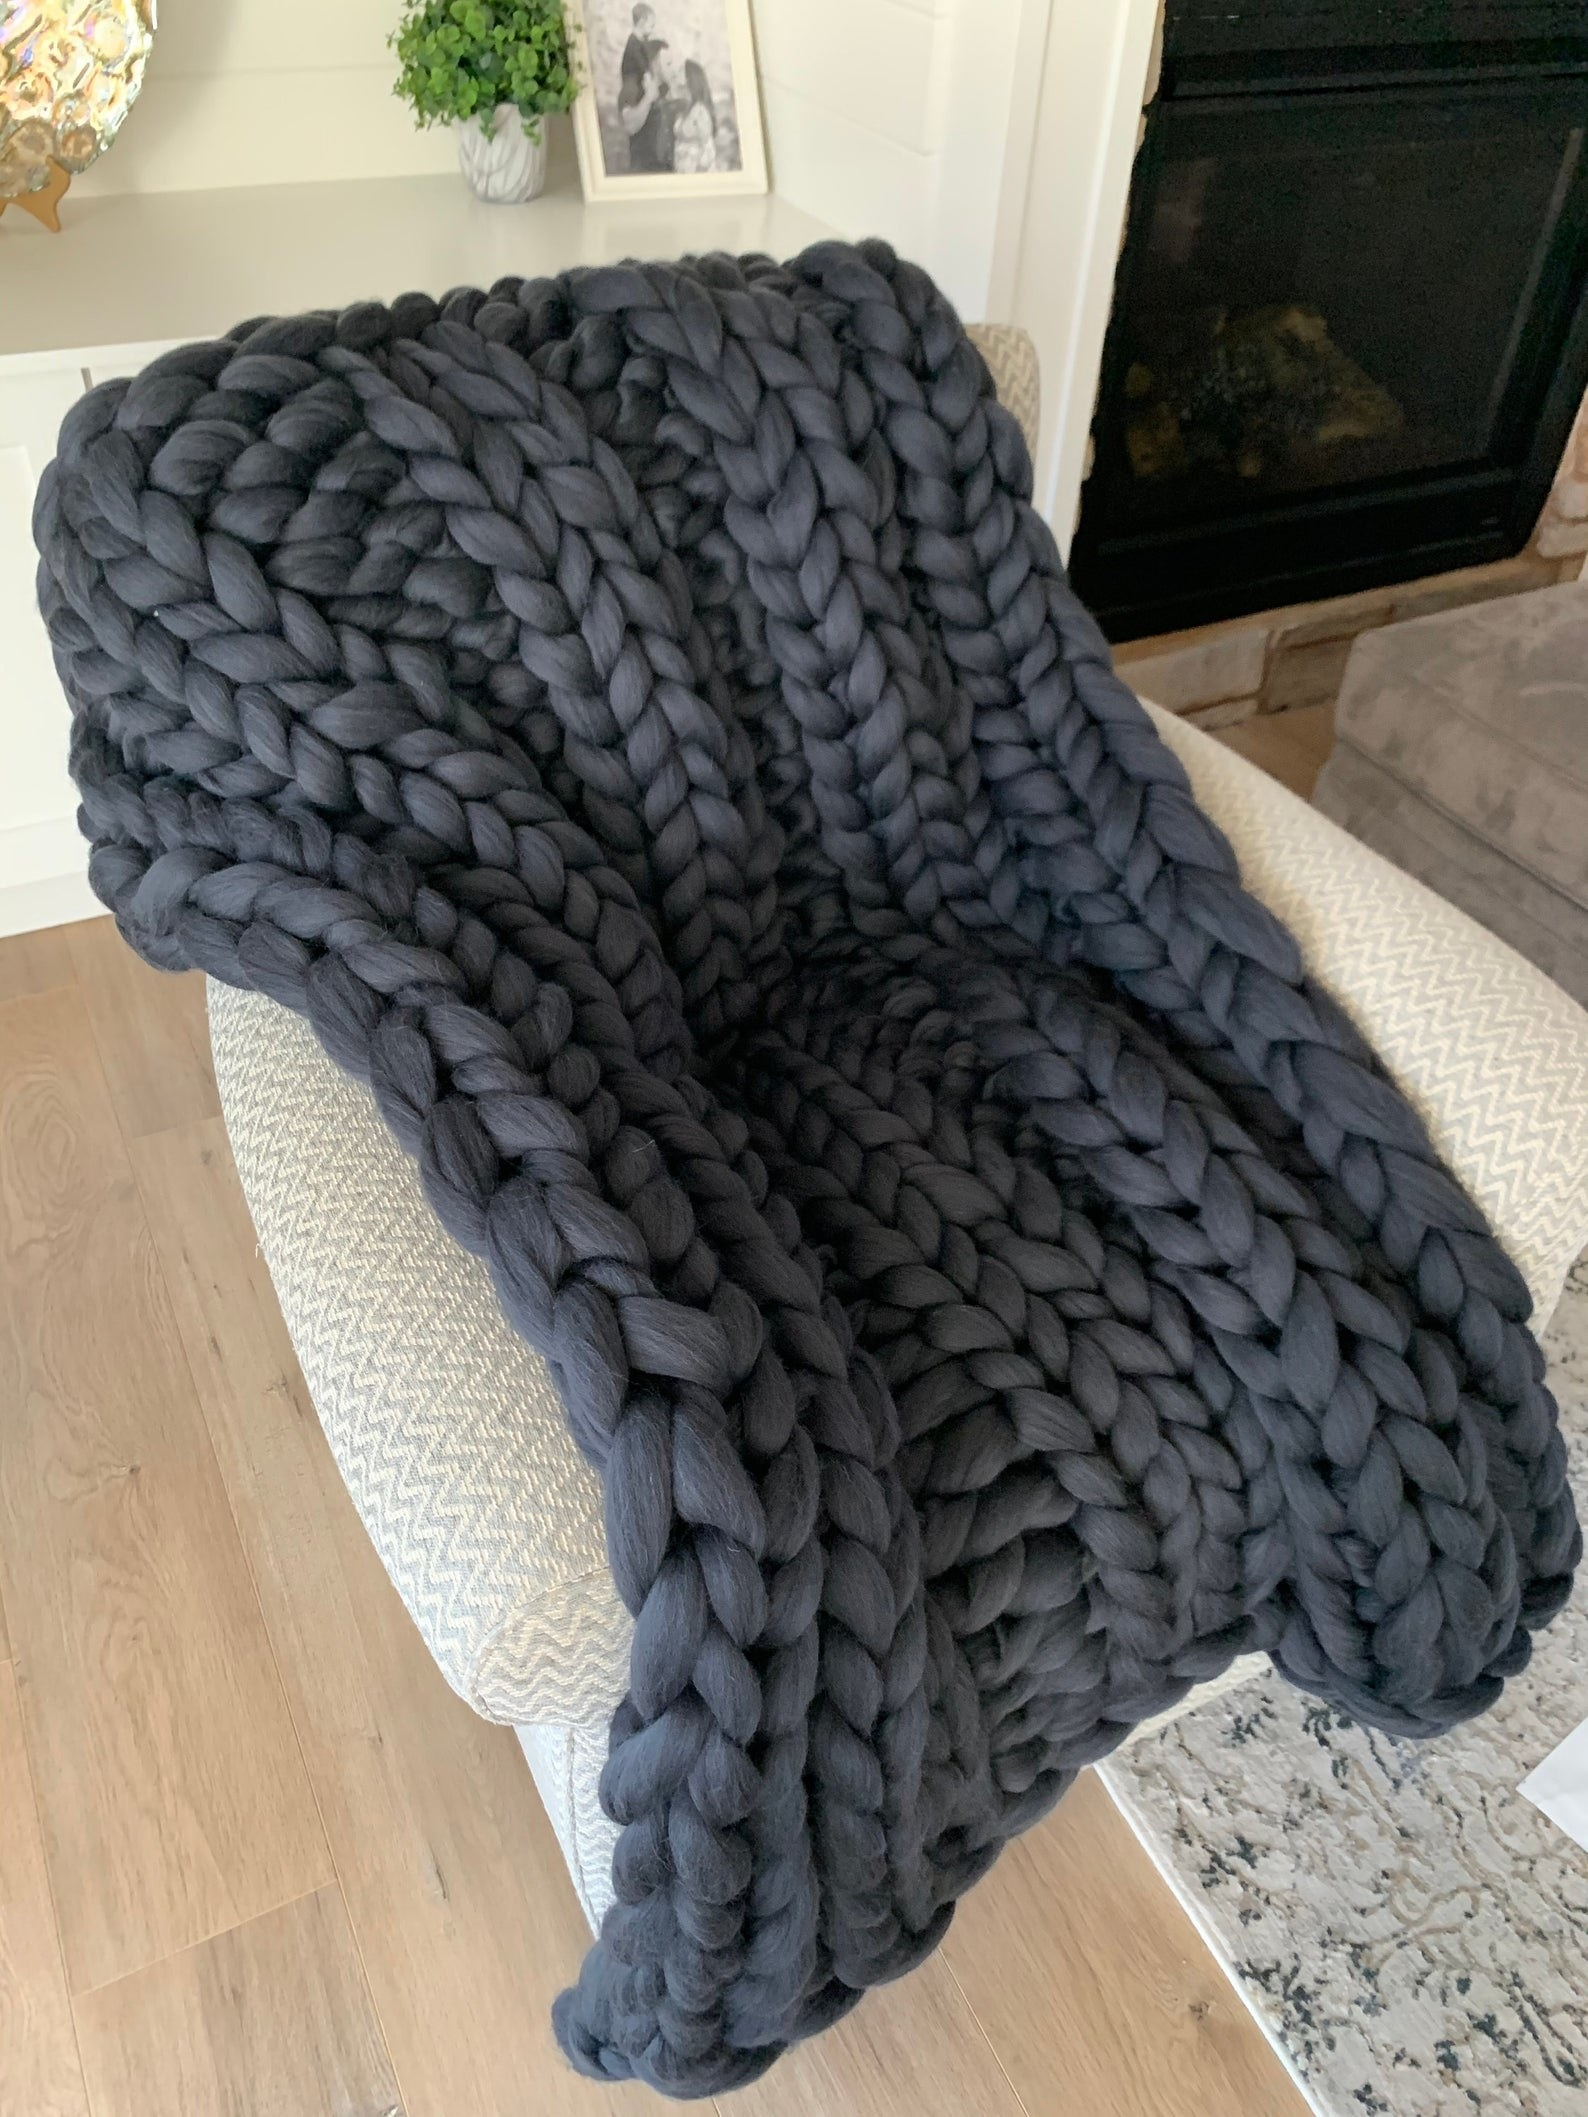 The gray knit blanket draped over a chair